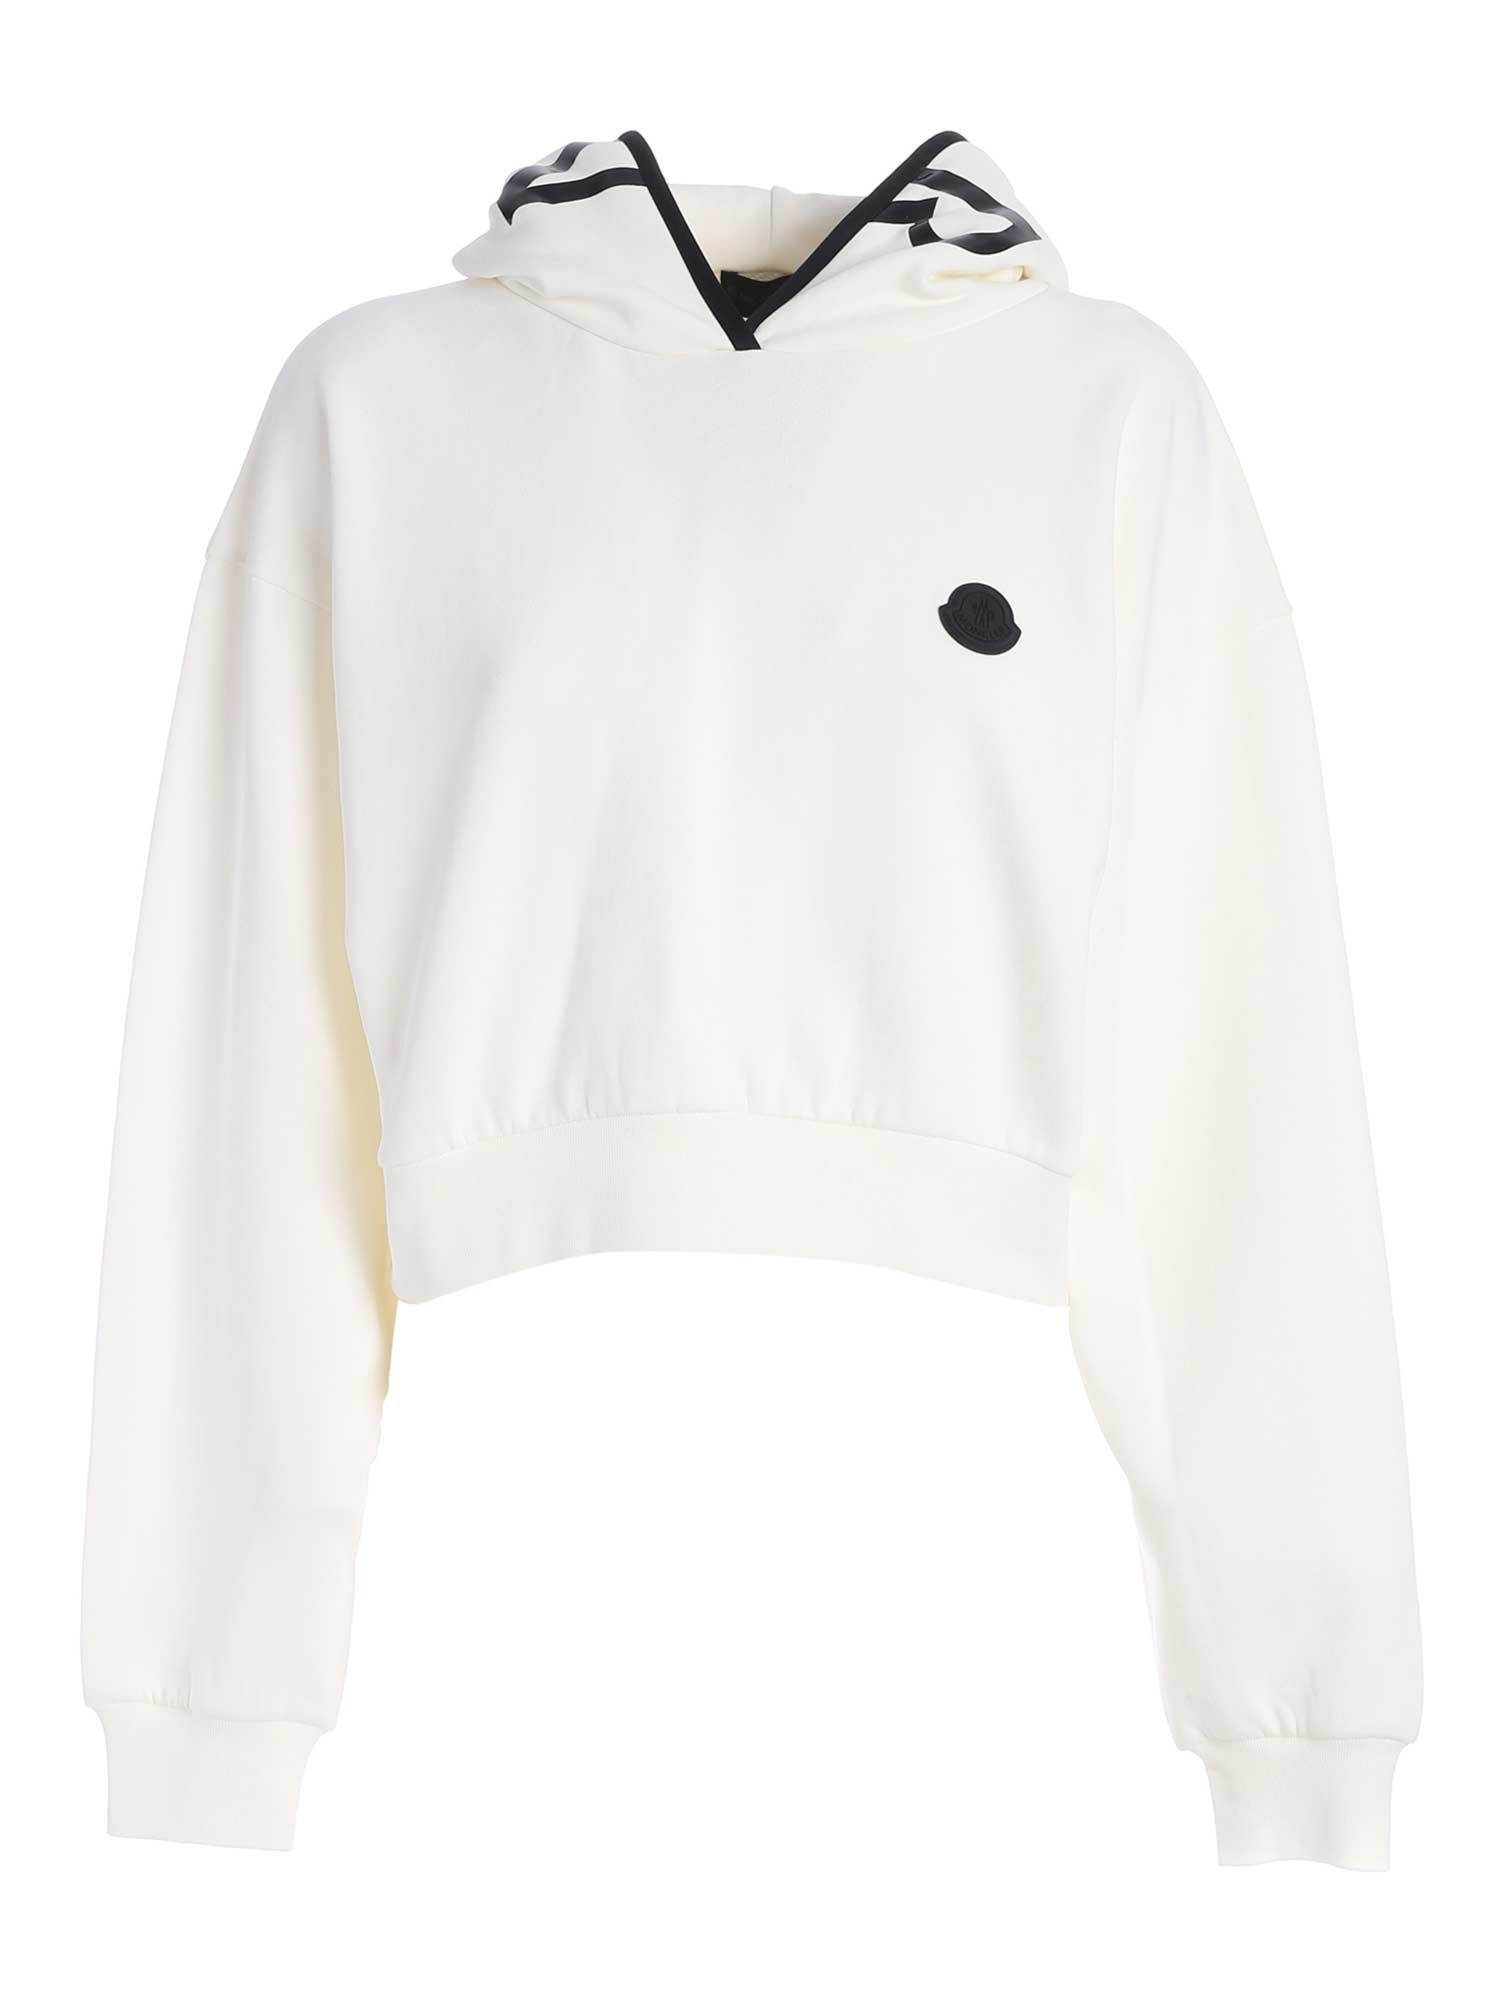 Moncler Grenoble LOGO CROP SWEATSHIRT IN IVORY COLOR